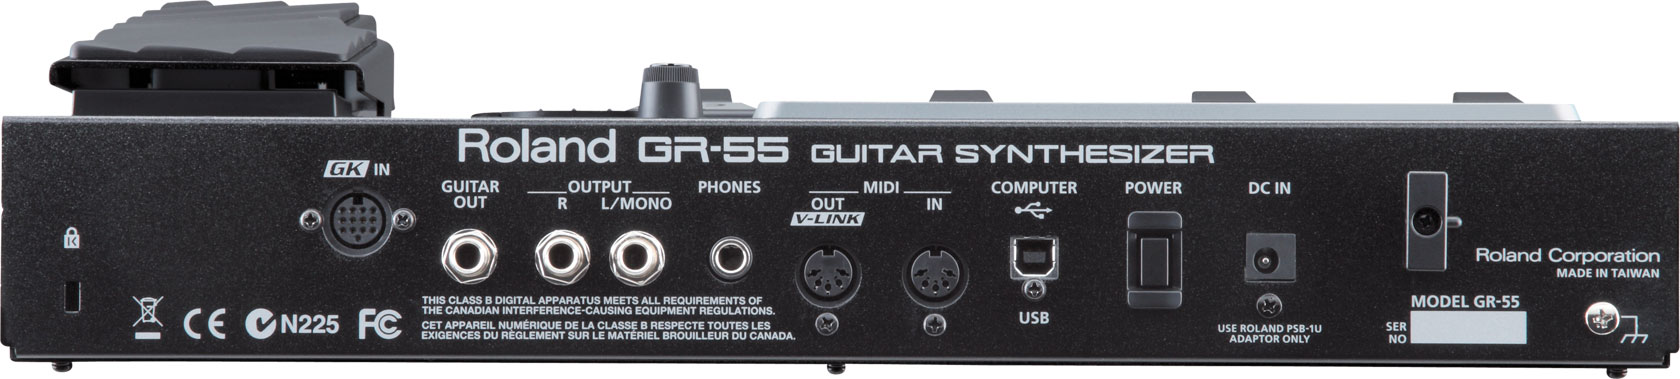 Power Supply for Roland GR-55 Guitar Synthesizer GR55 AC Adapter